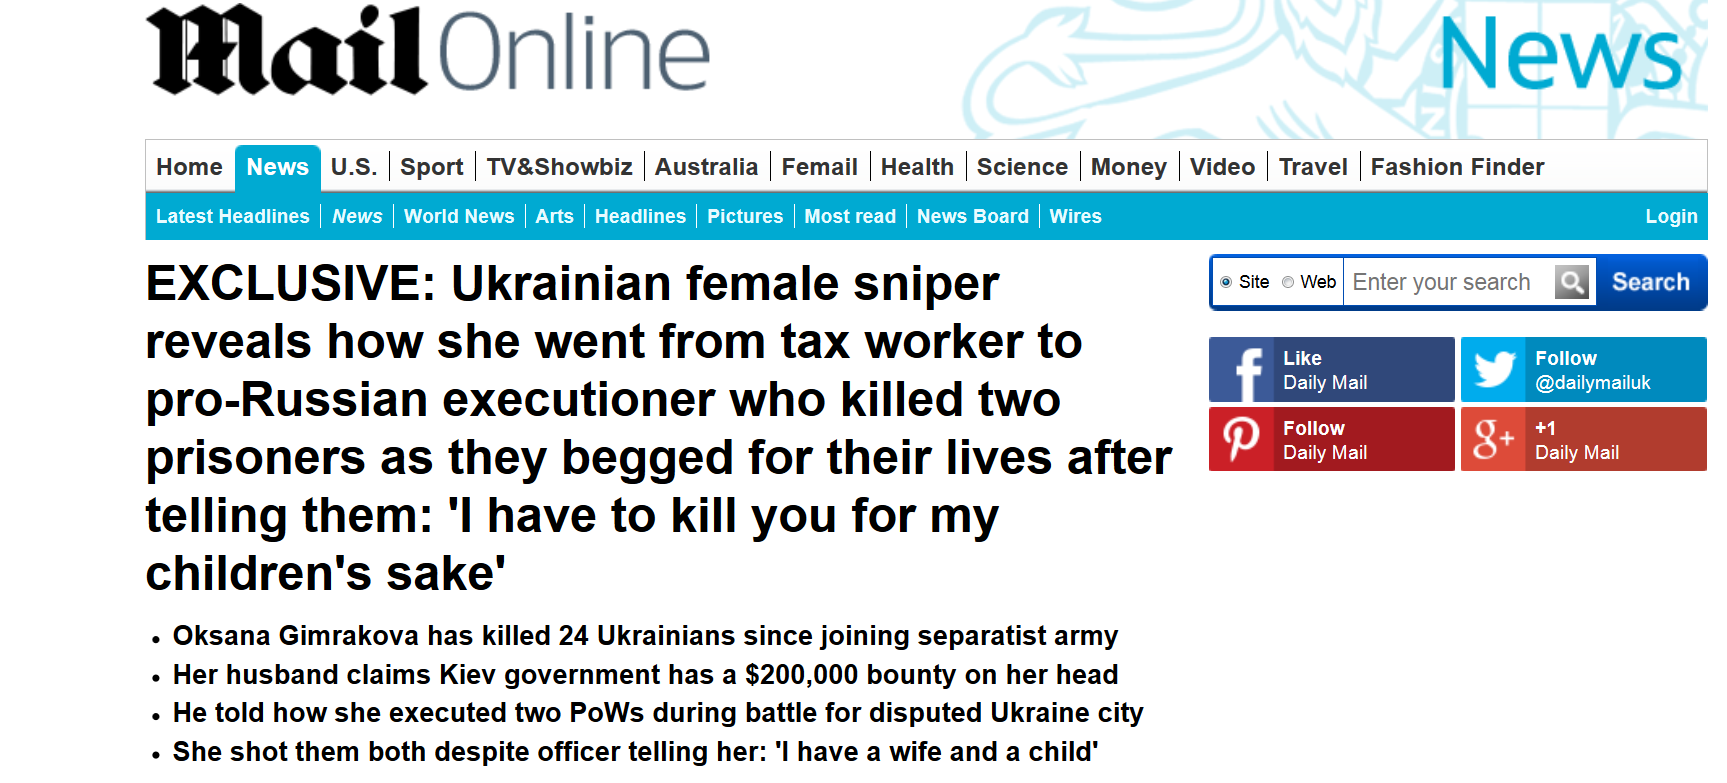 http://www.dailymail.co.uk/news/article-3124278/Ukrainian-female-sniper-reveals-went-tax-worker-pro-Russian-executioner-killed-two-prisoners-begged-lives.html